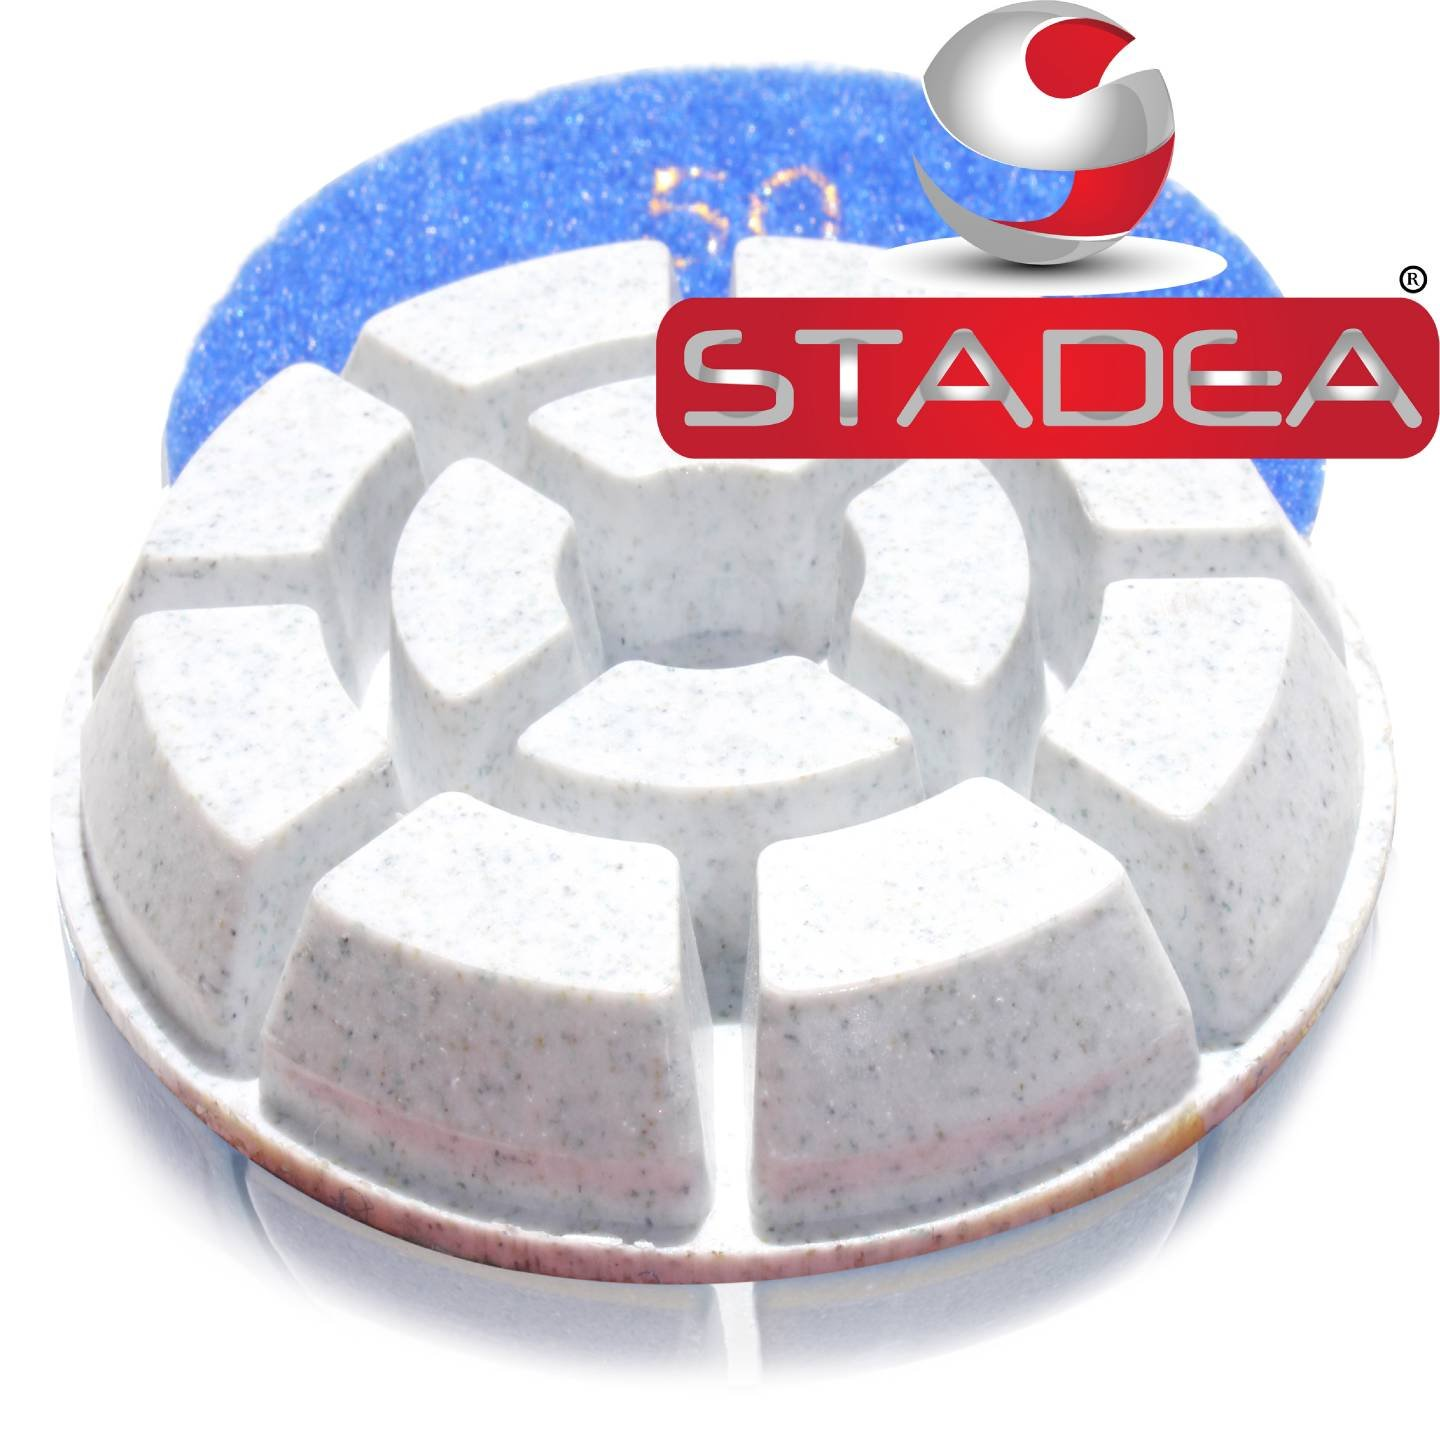 concrete floor polishing pads polisher pad - Grit 50 By Stadea